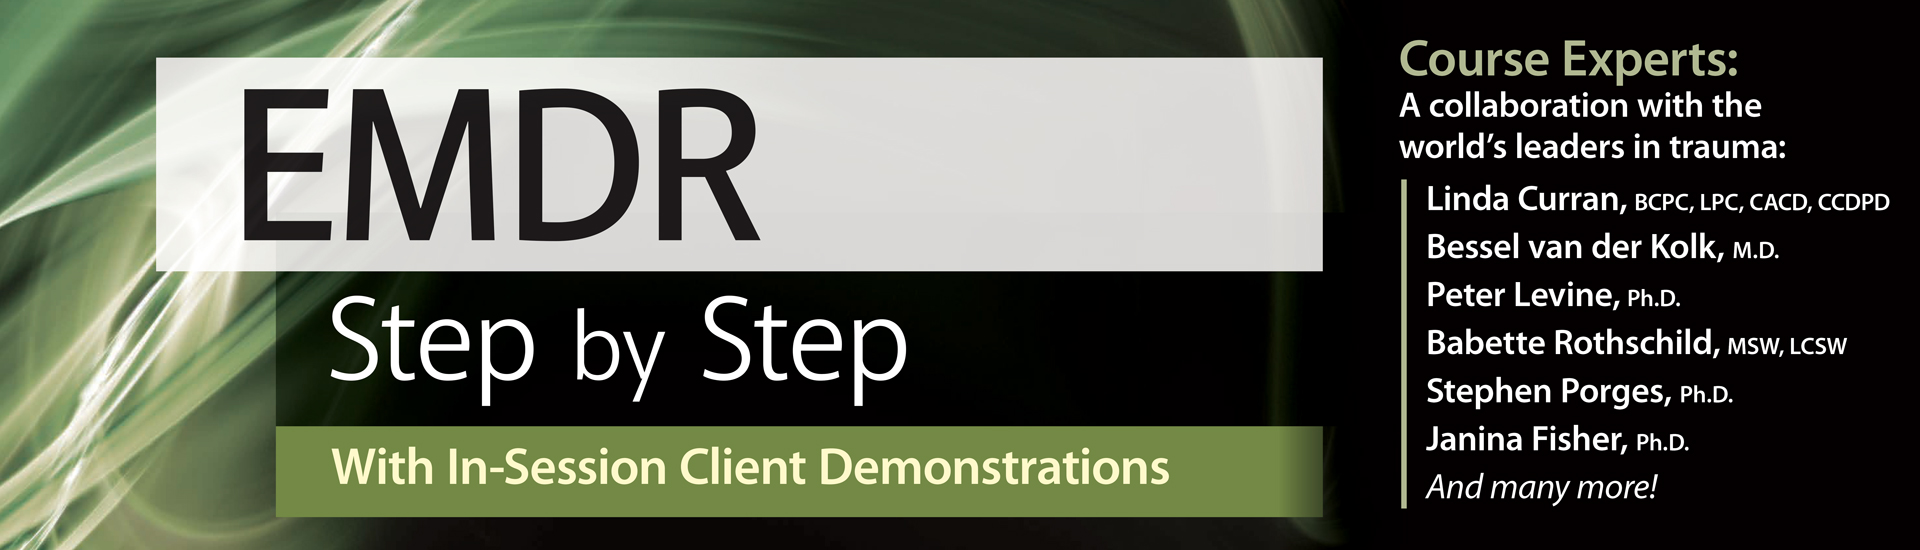 EMDR: Step by Step With In-Session Client Demonstrations